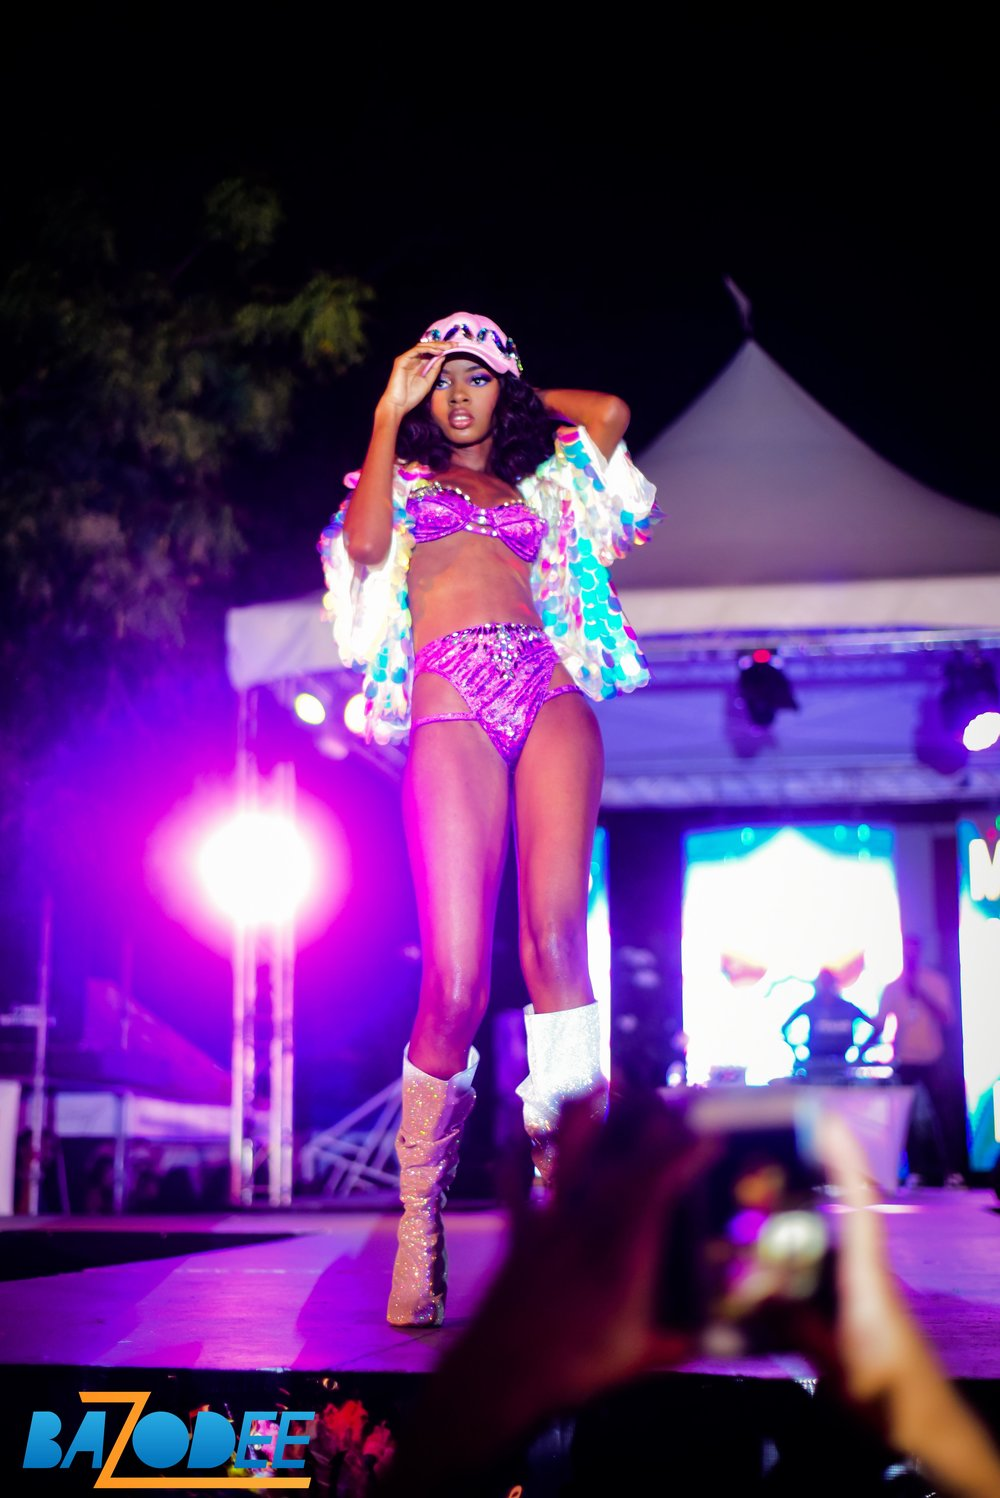 KHEPRI KULTURE  - She may be the anti-thesis to her bustier bandmate but she rocked the stage just as hard. This young model didn't let her small frame stop her from rocking the runway. She knew all her poses and angles and she worked the hell out of her costume.